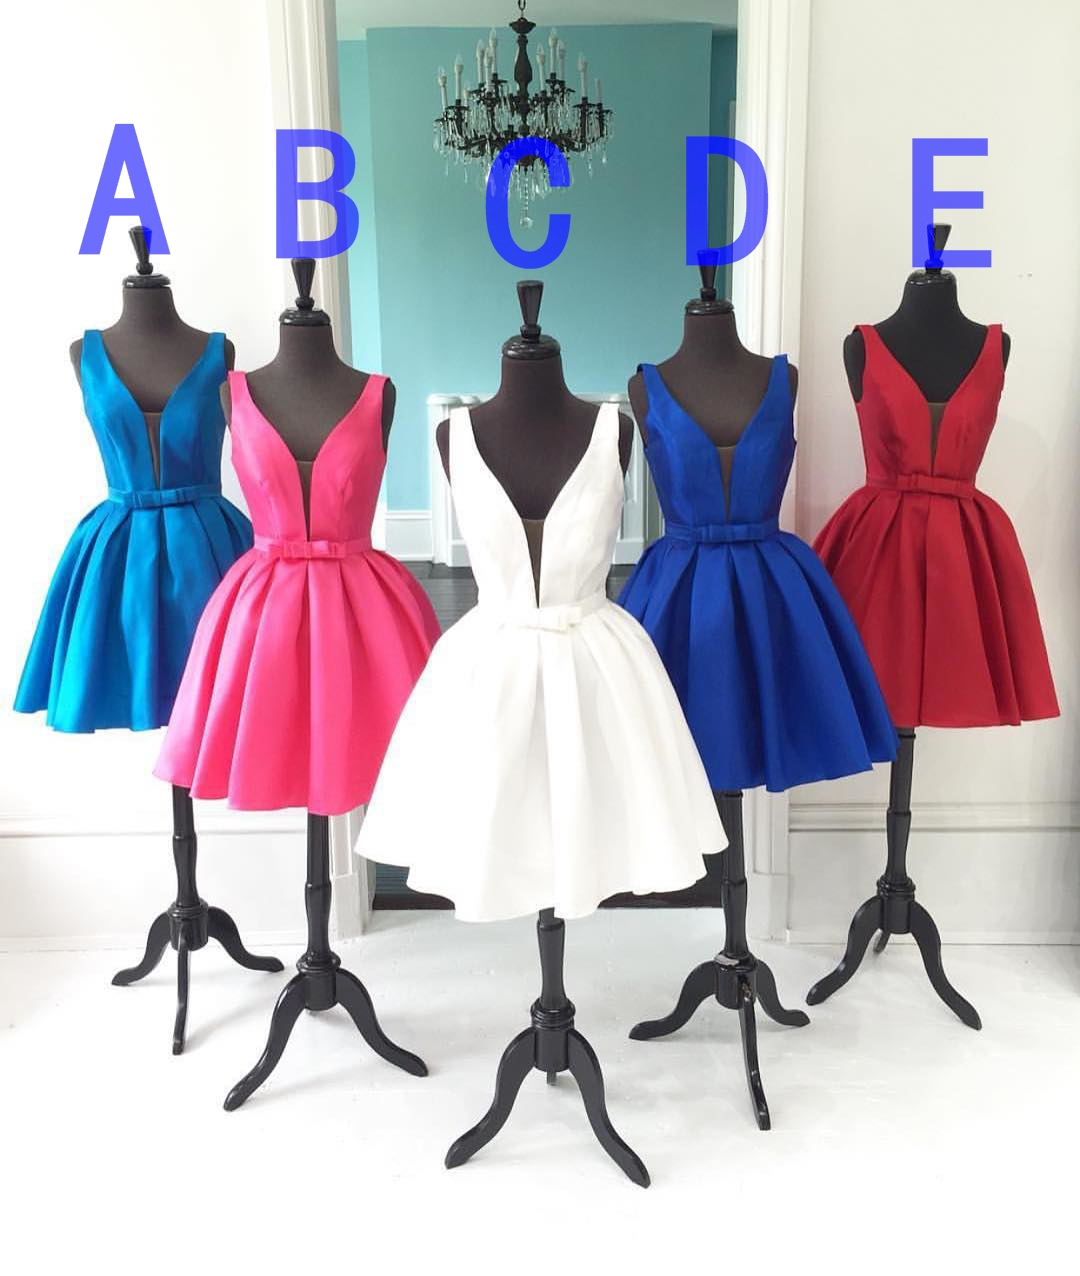 V-neck Homecoming Dress,Colorful Homecoming Dress,Junior Homecoming Dress, Sexy Homecoming Dress,Evening Dress, Homecoming Dress ,Prom Dress for Teens